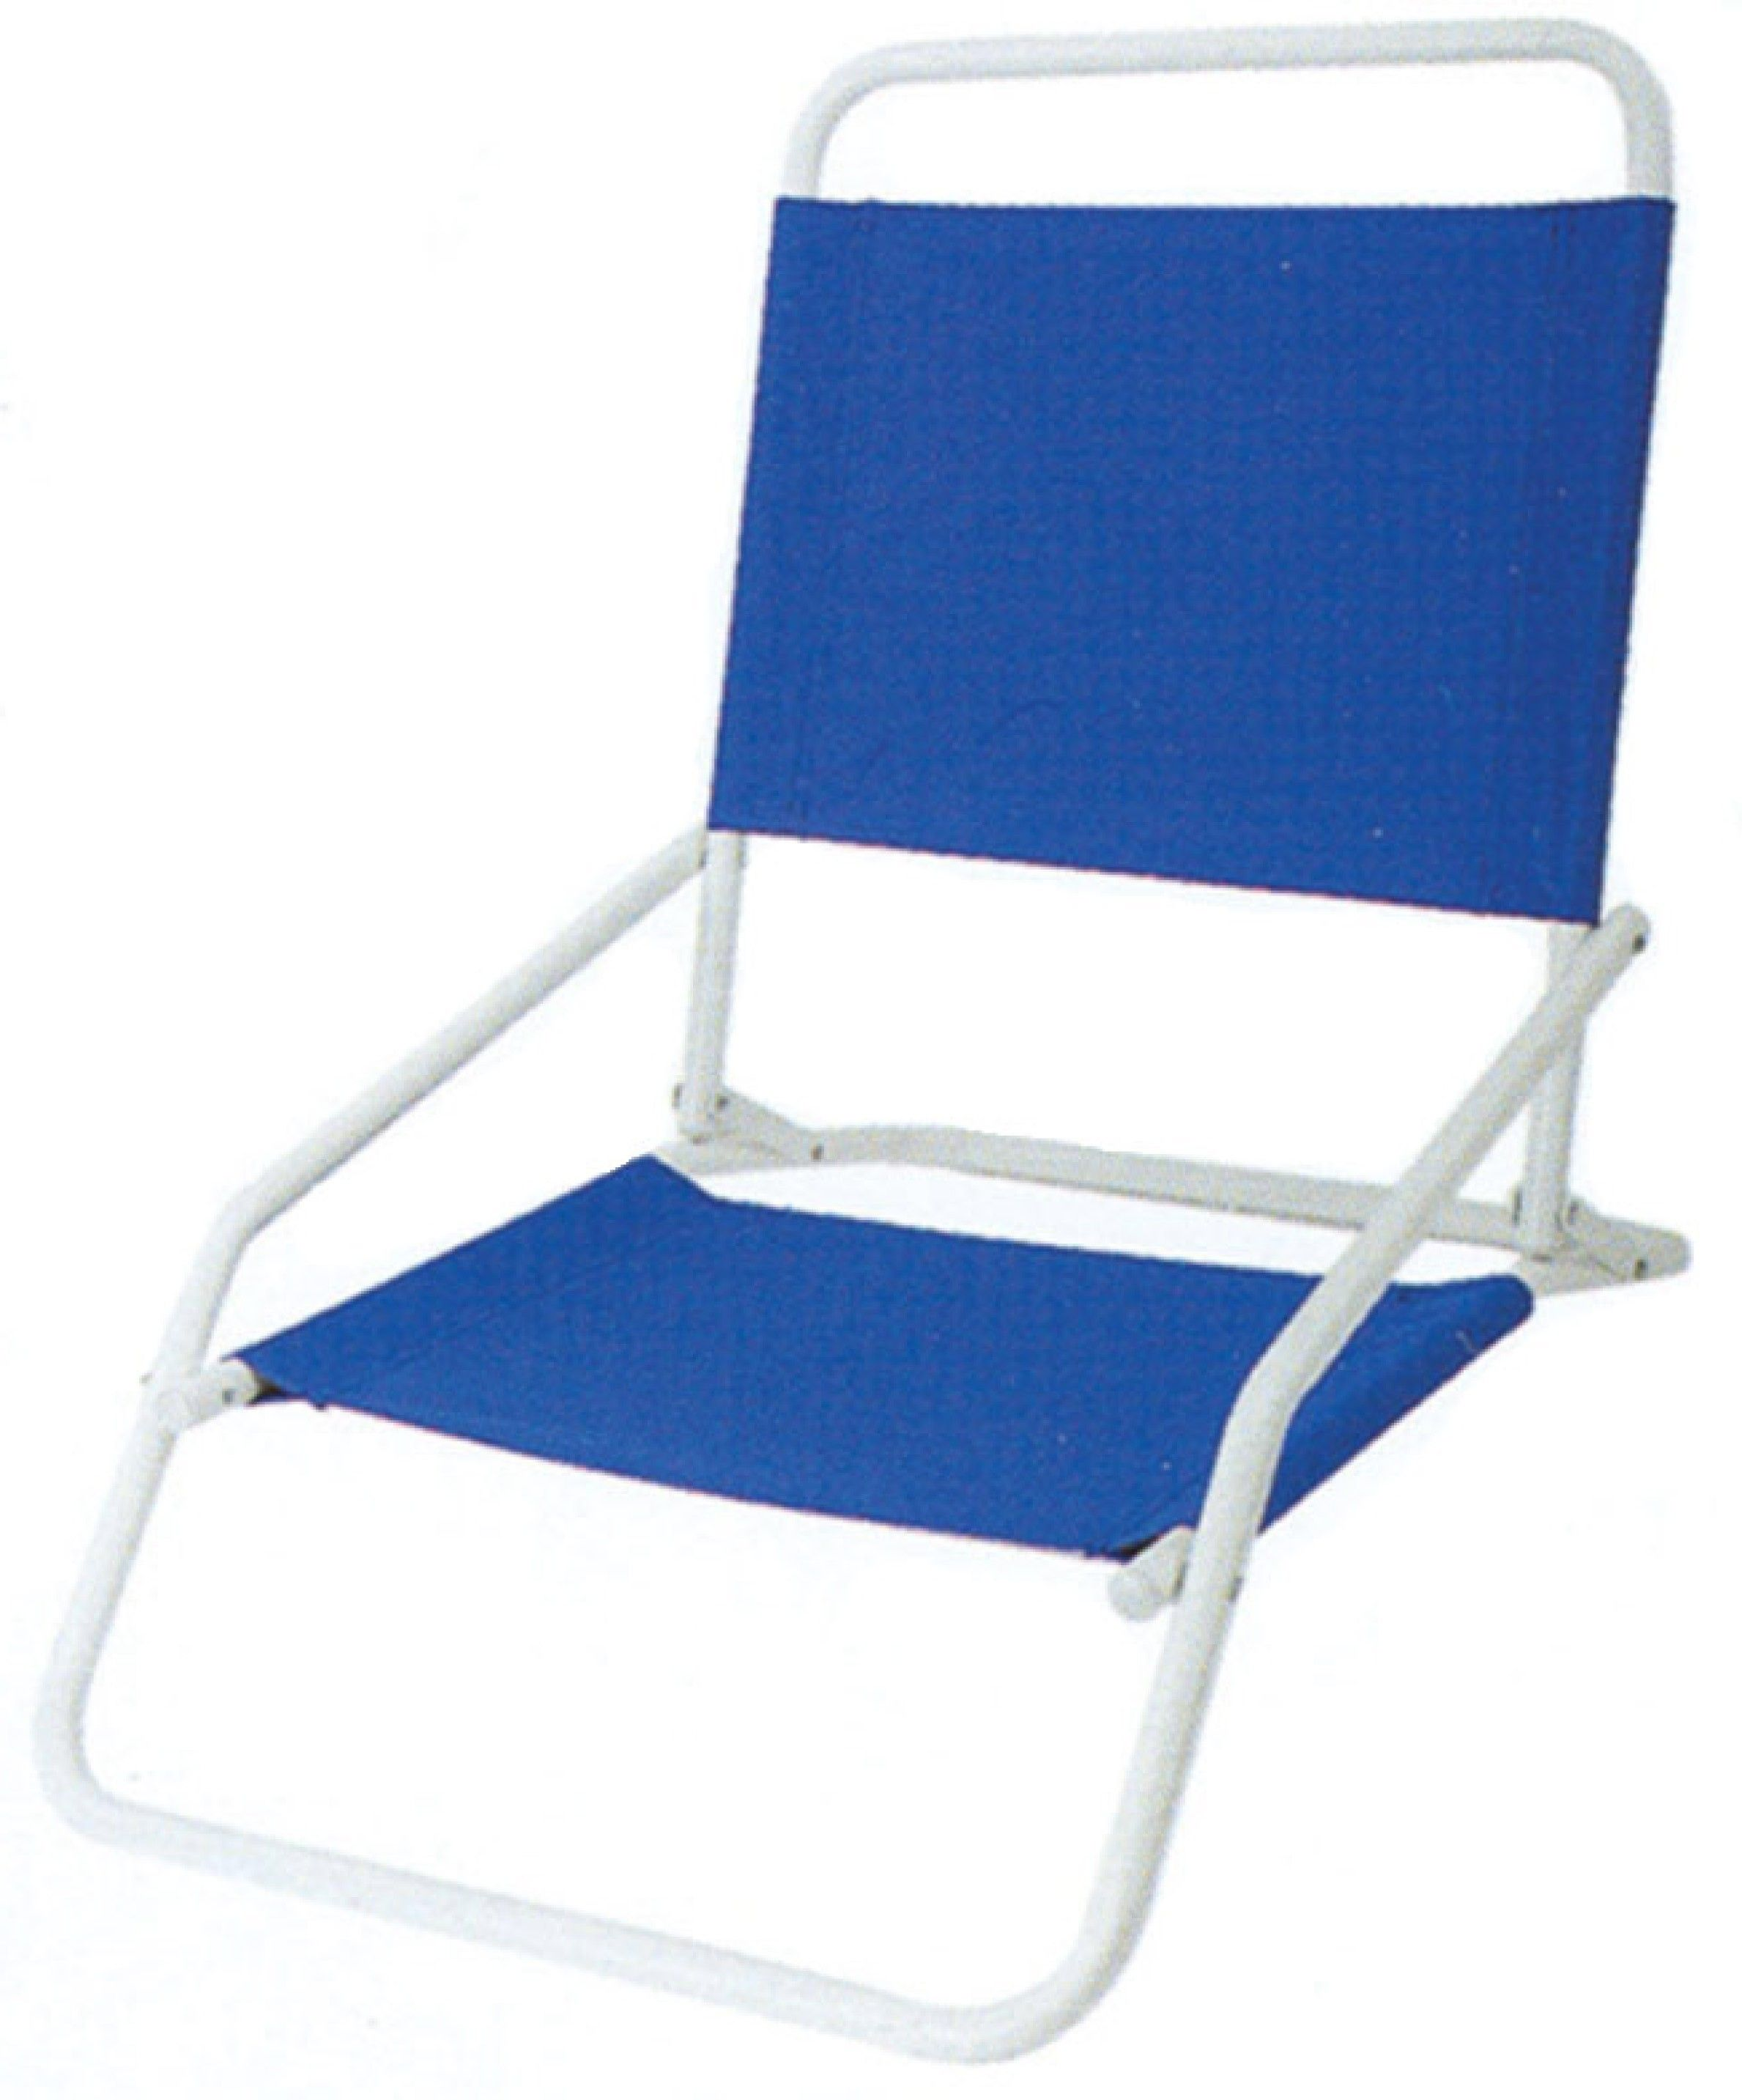 Cheap Beach Chairs Whiskey Barrel Table And Best Places To Buy Chair Supplier In China Benches